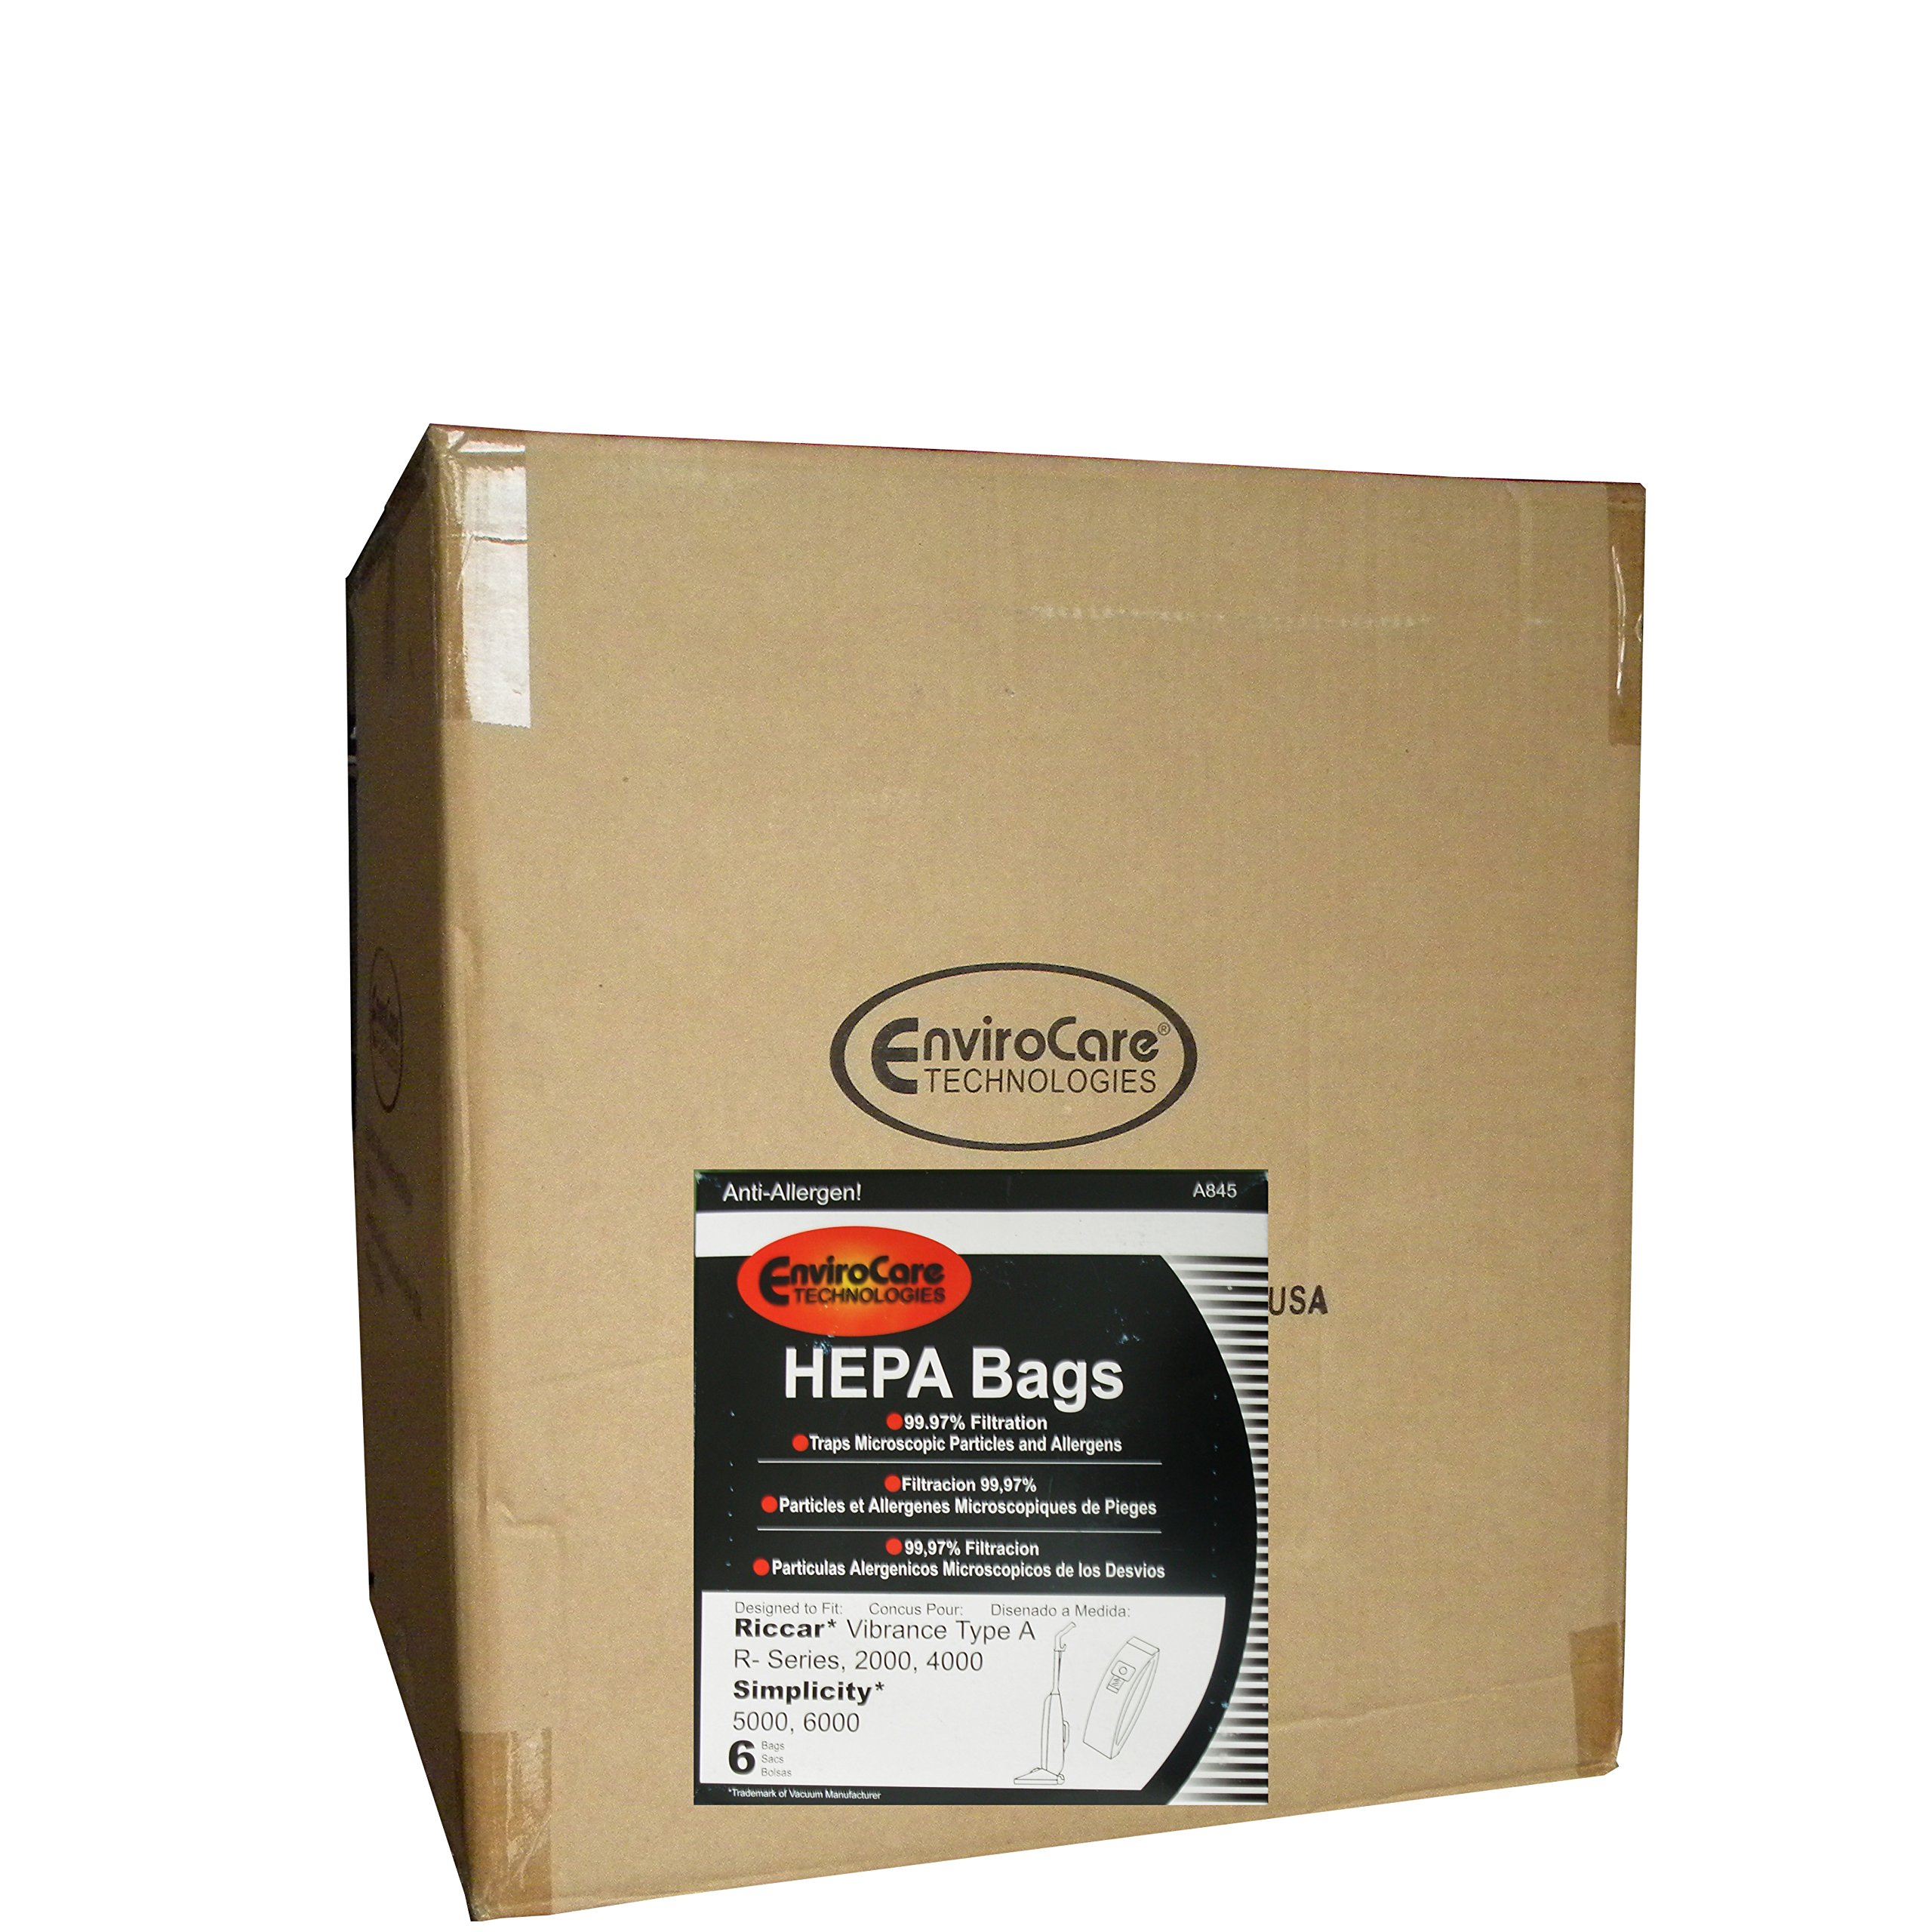 72 Riccar Vibrance Simplicity 5000, 6000 Type a Hepa Bags, Commercial, Canister Vacuum Cleaners, S6-3, S6-12, C13-6, C13H-6, 52-2402-07, R500, R600, R700, R800 R800C, R100, R200, R300, R300C 2000, 4000, 6100, 6370, 6400, 6550, 6570